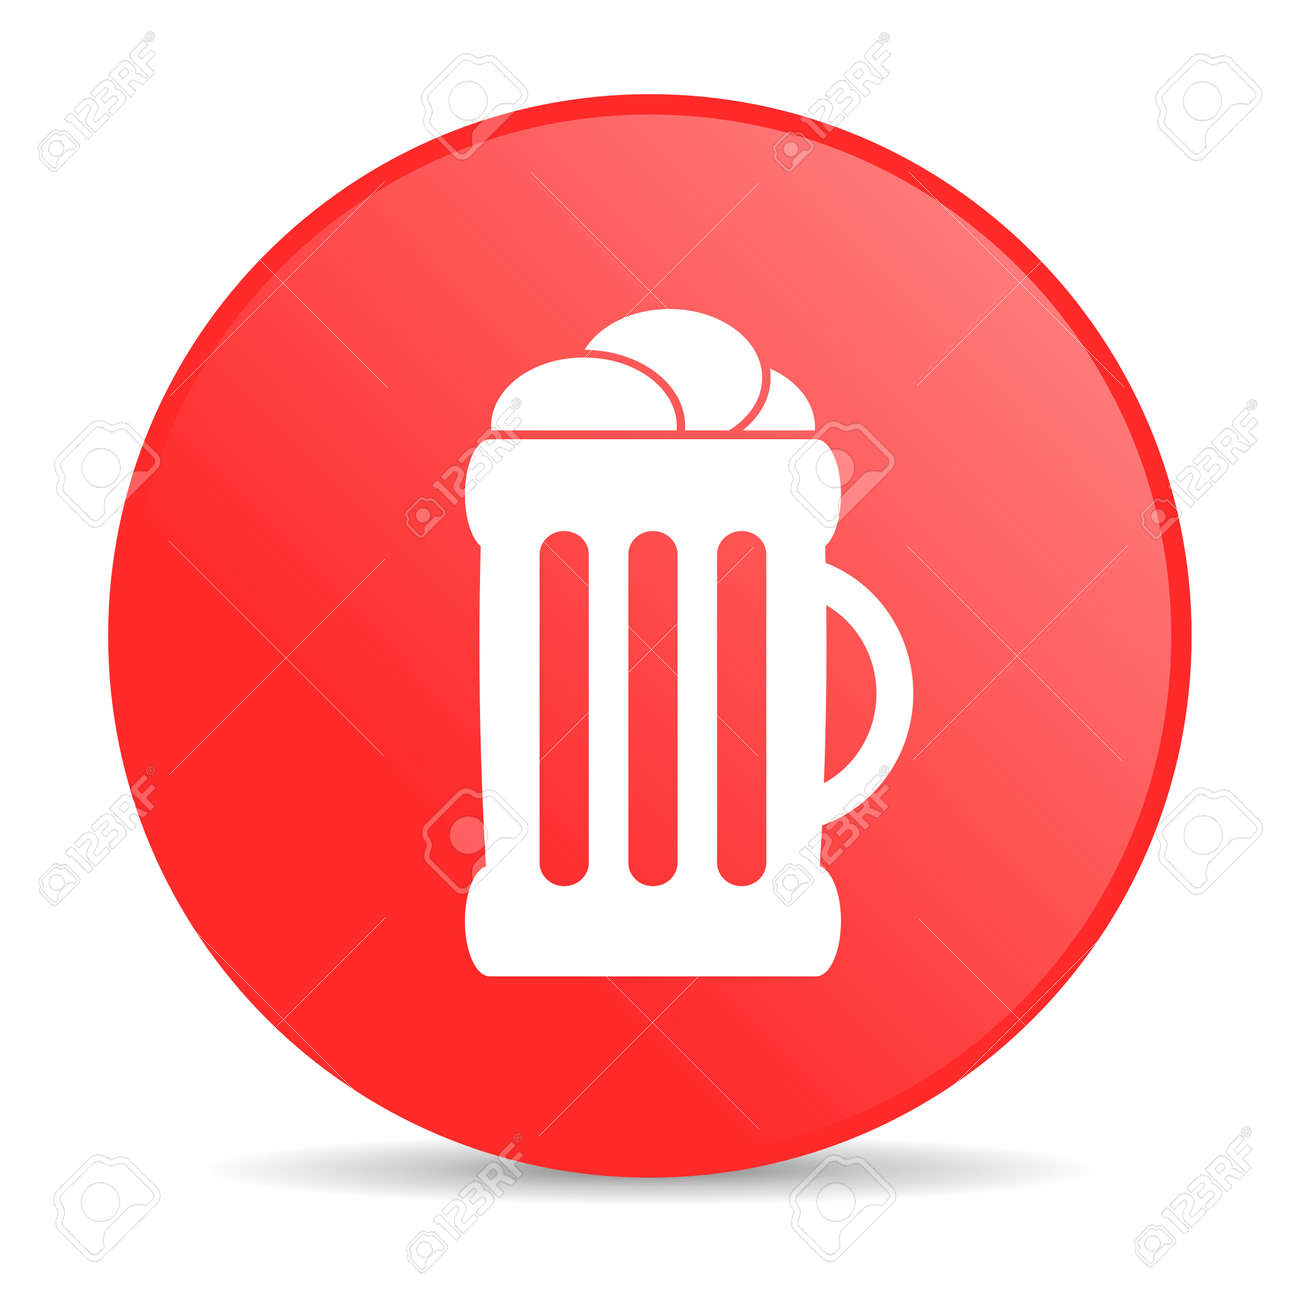 beer red circle web glossy icon Stock Photo - 19228169